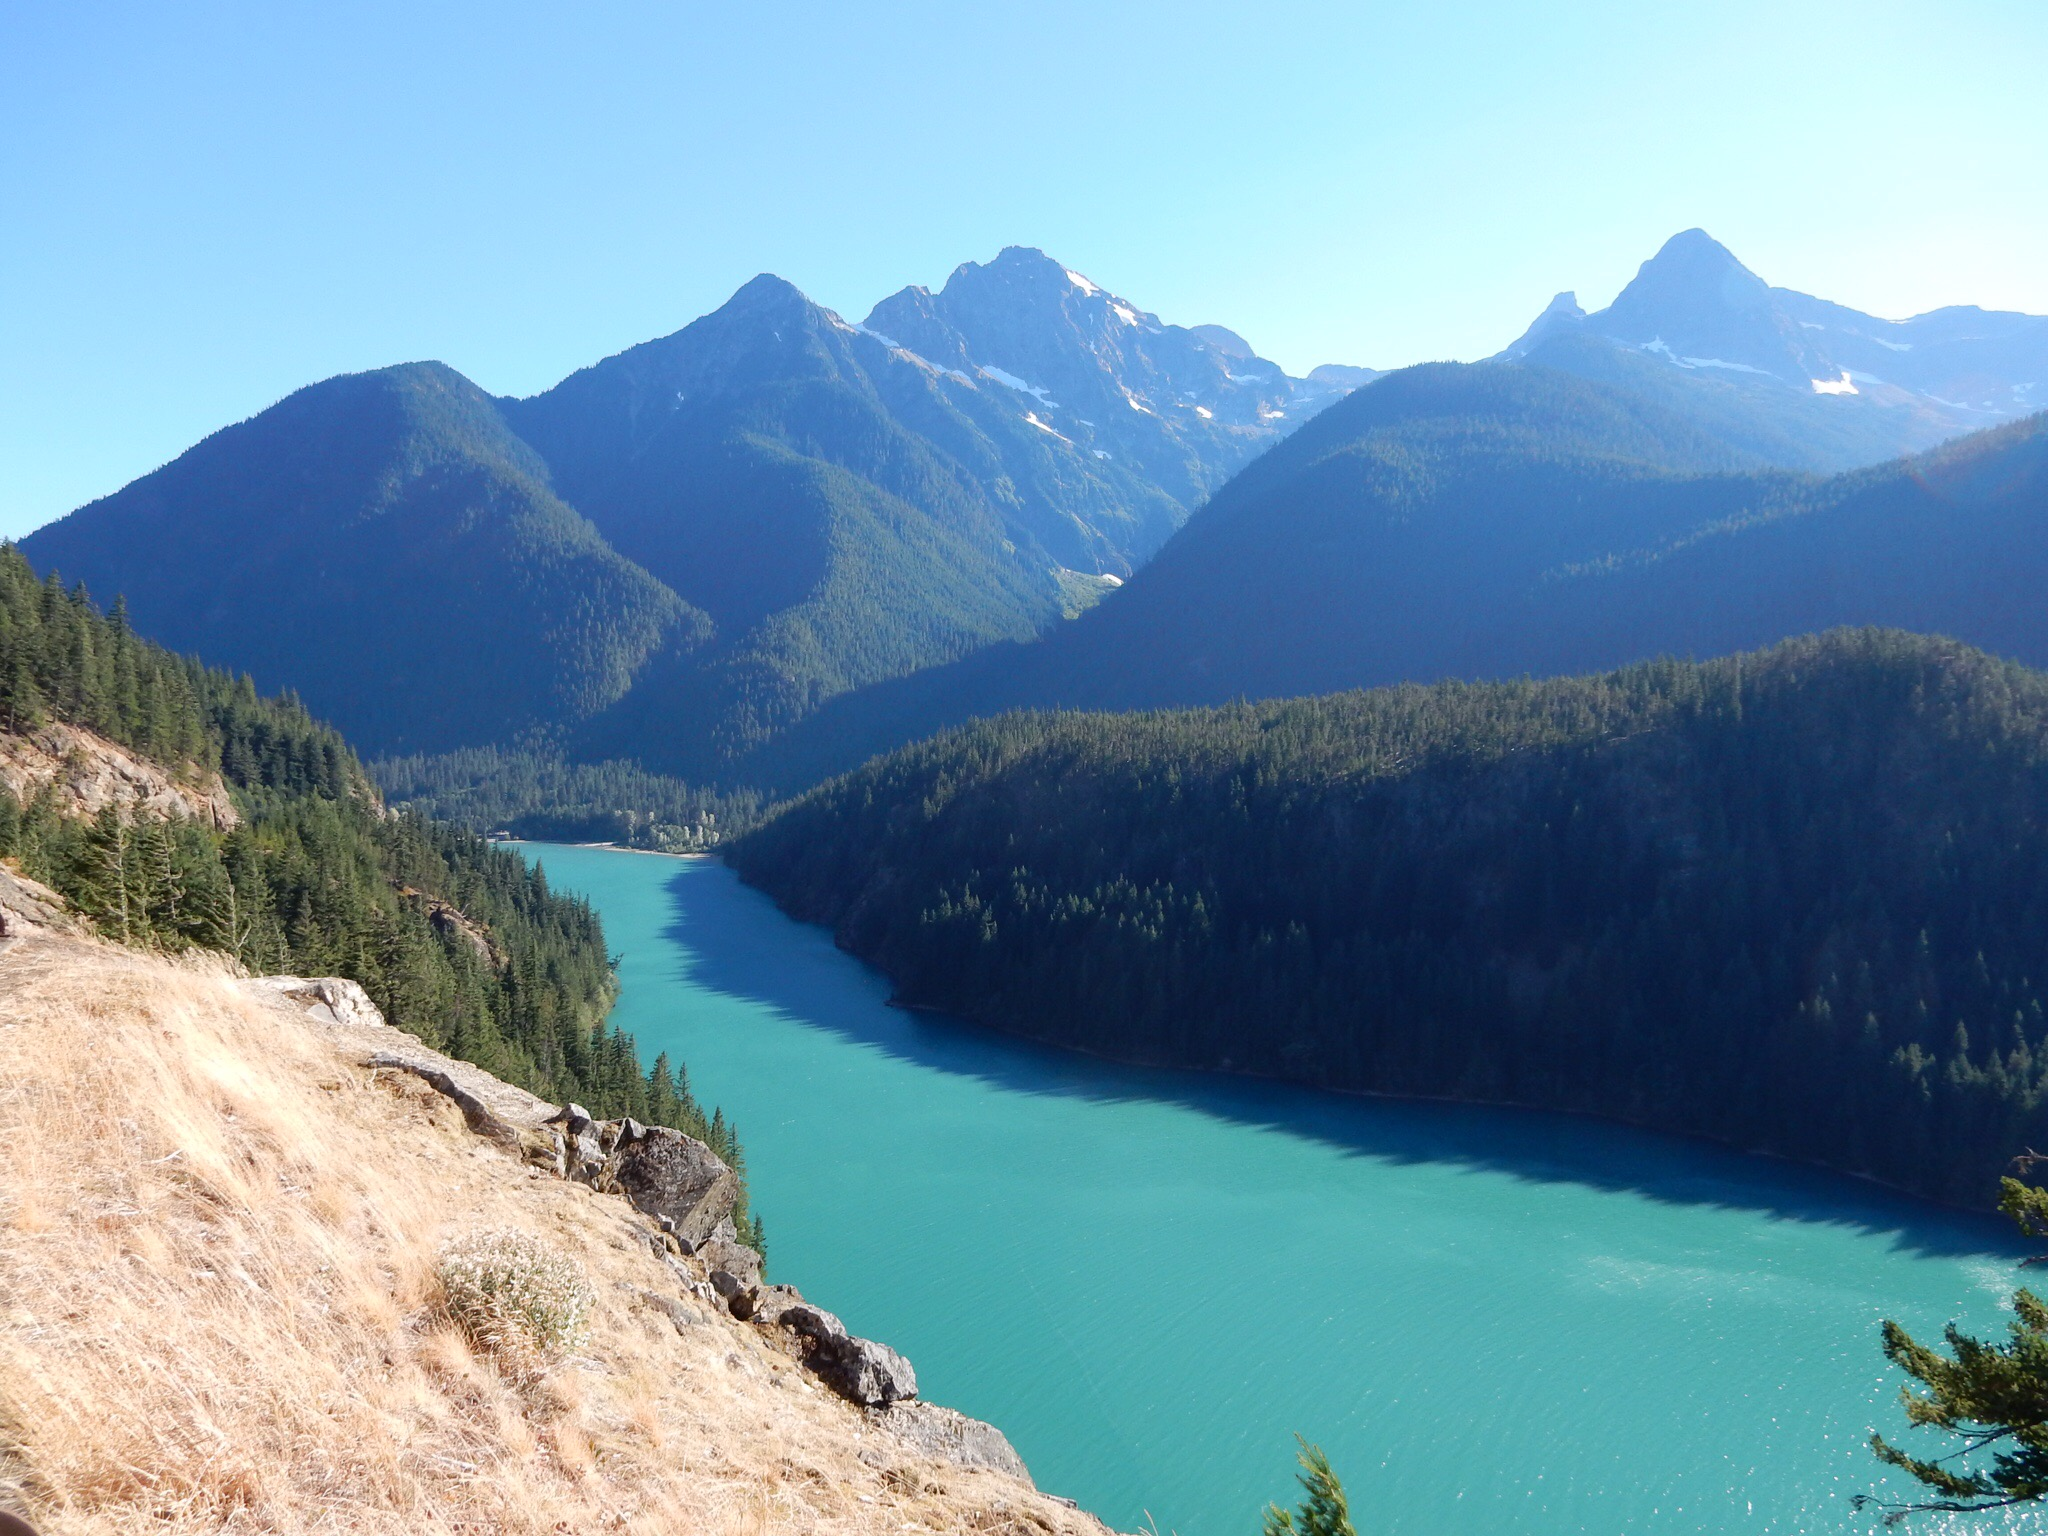 South leg of Diablo Lake.